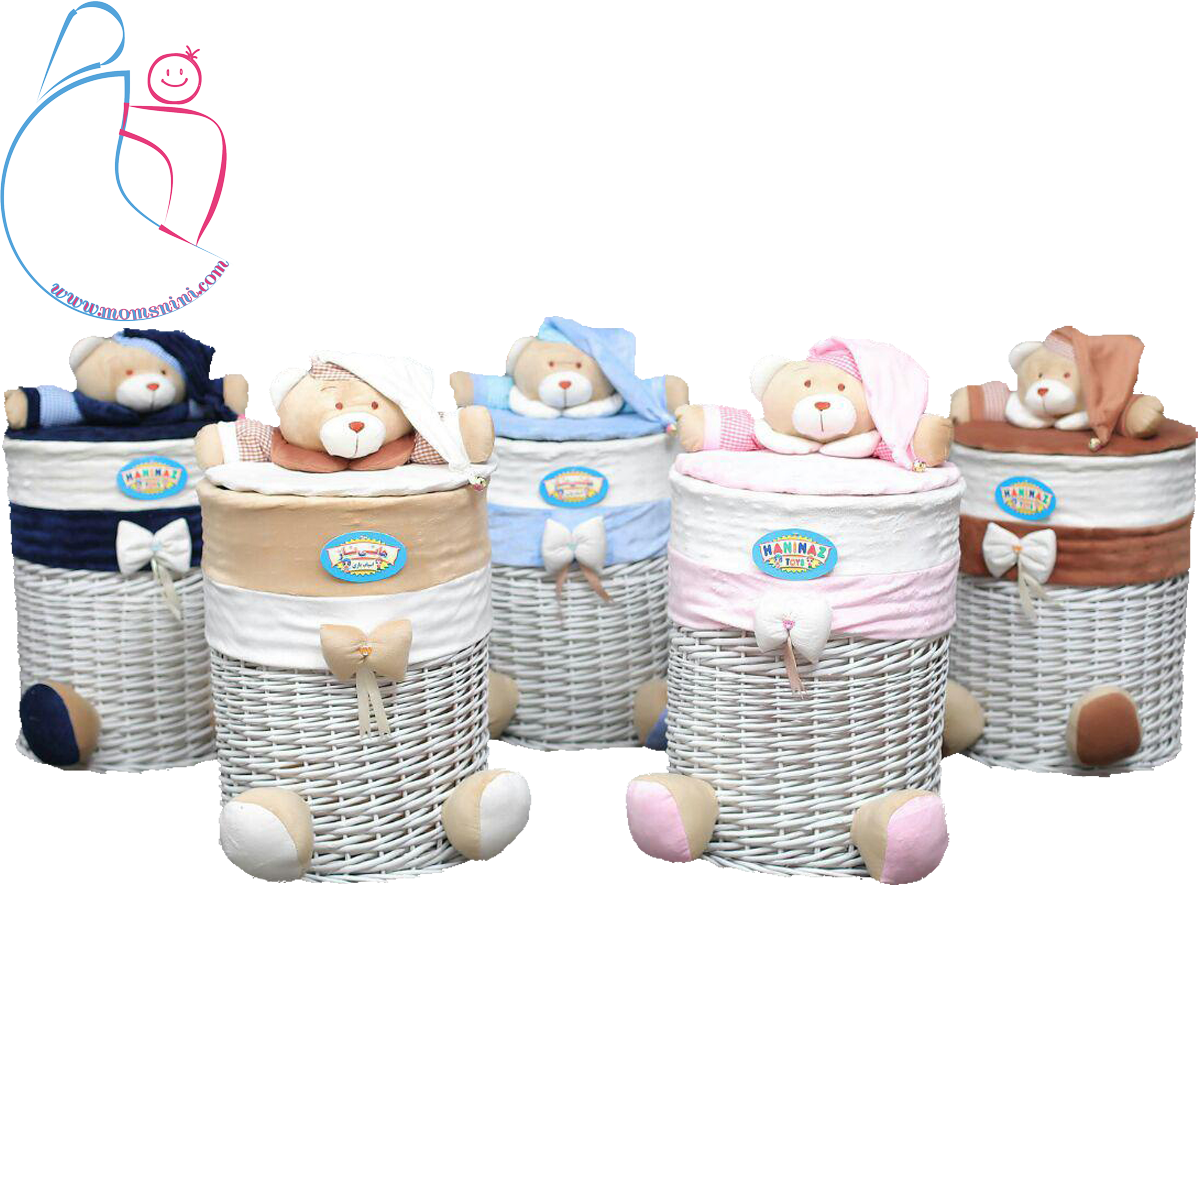 سبدلباس مدل خرسی تدی ( teddy bear decorated basket)